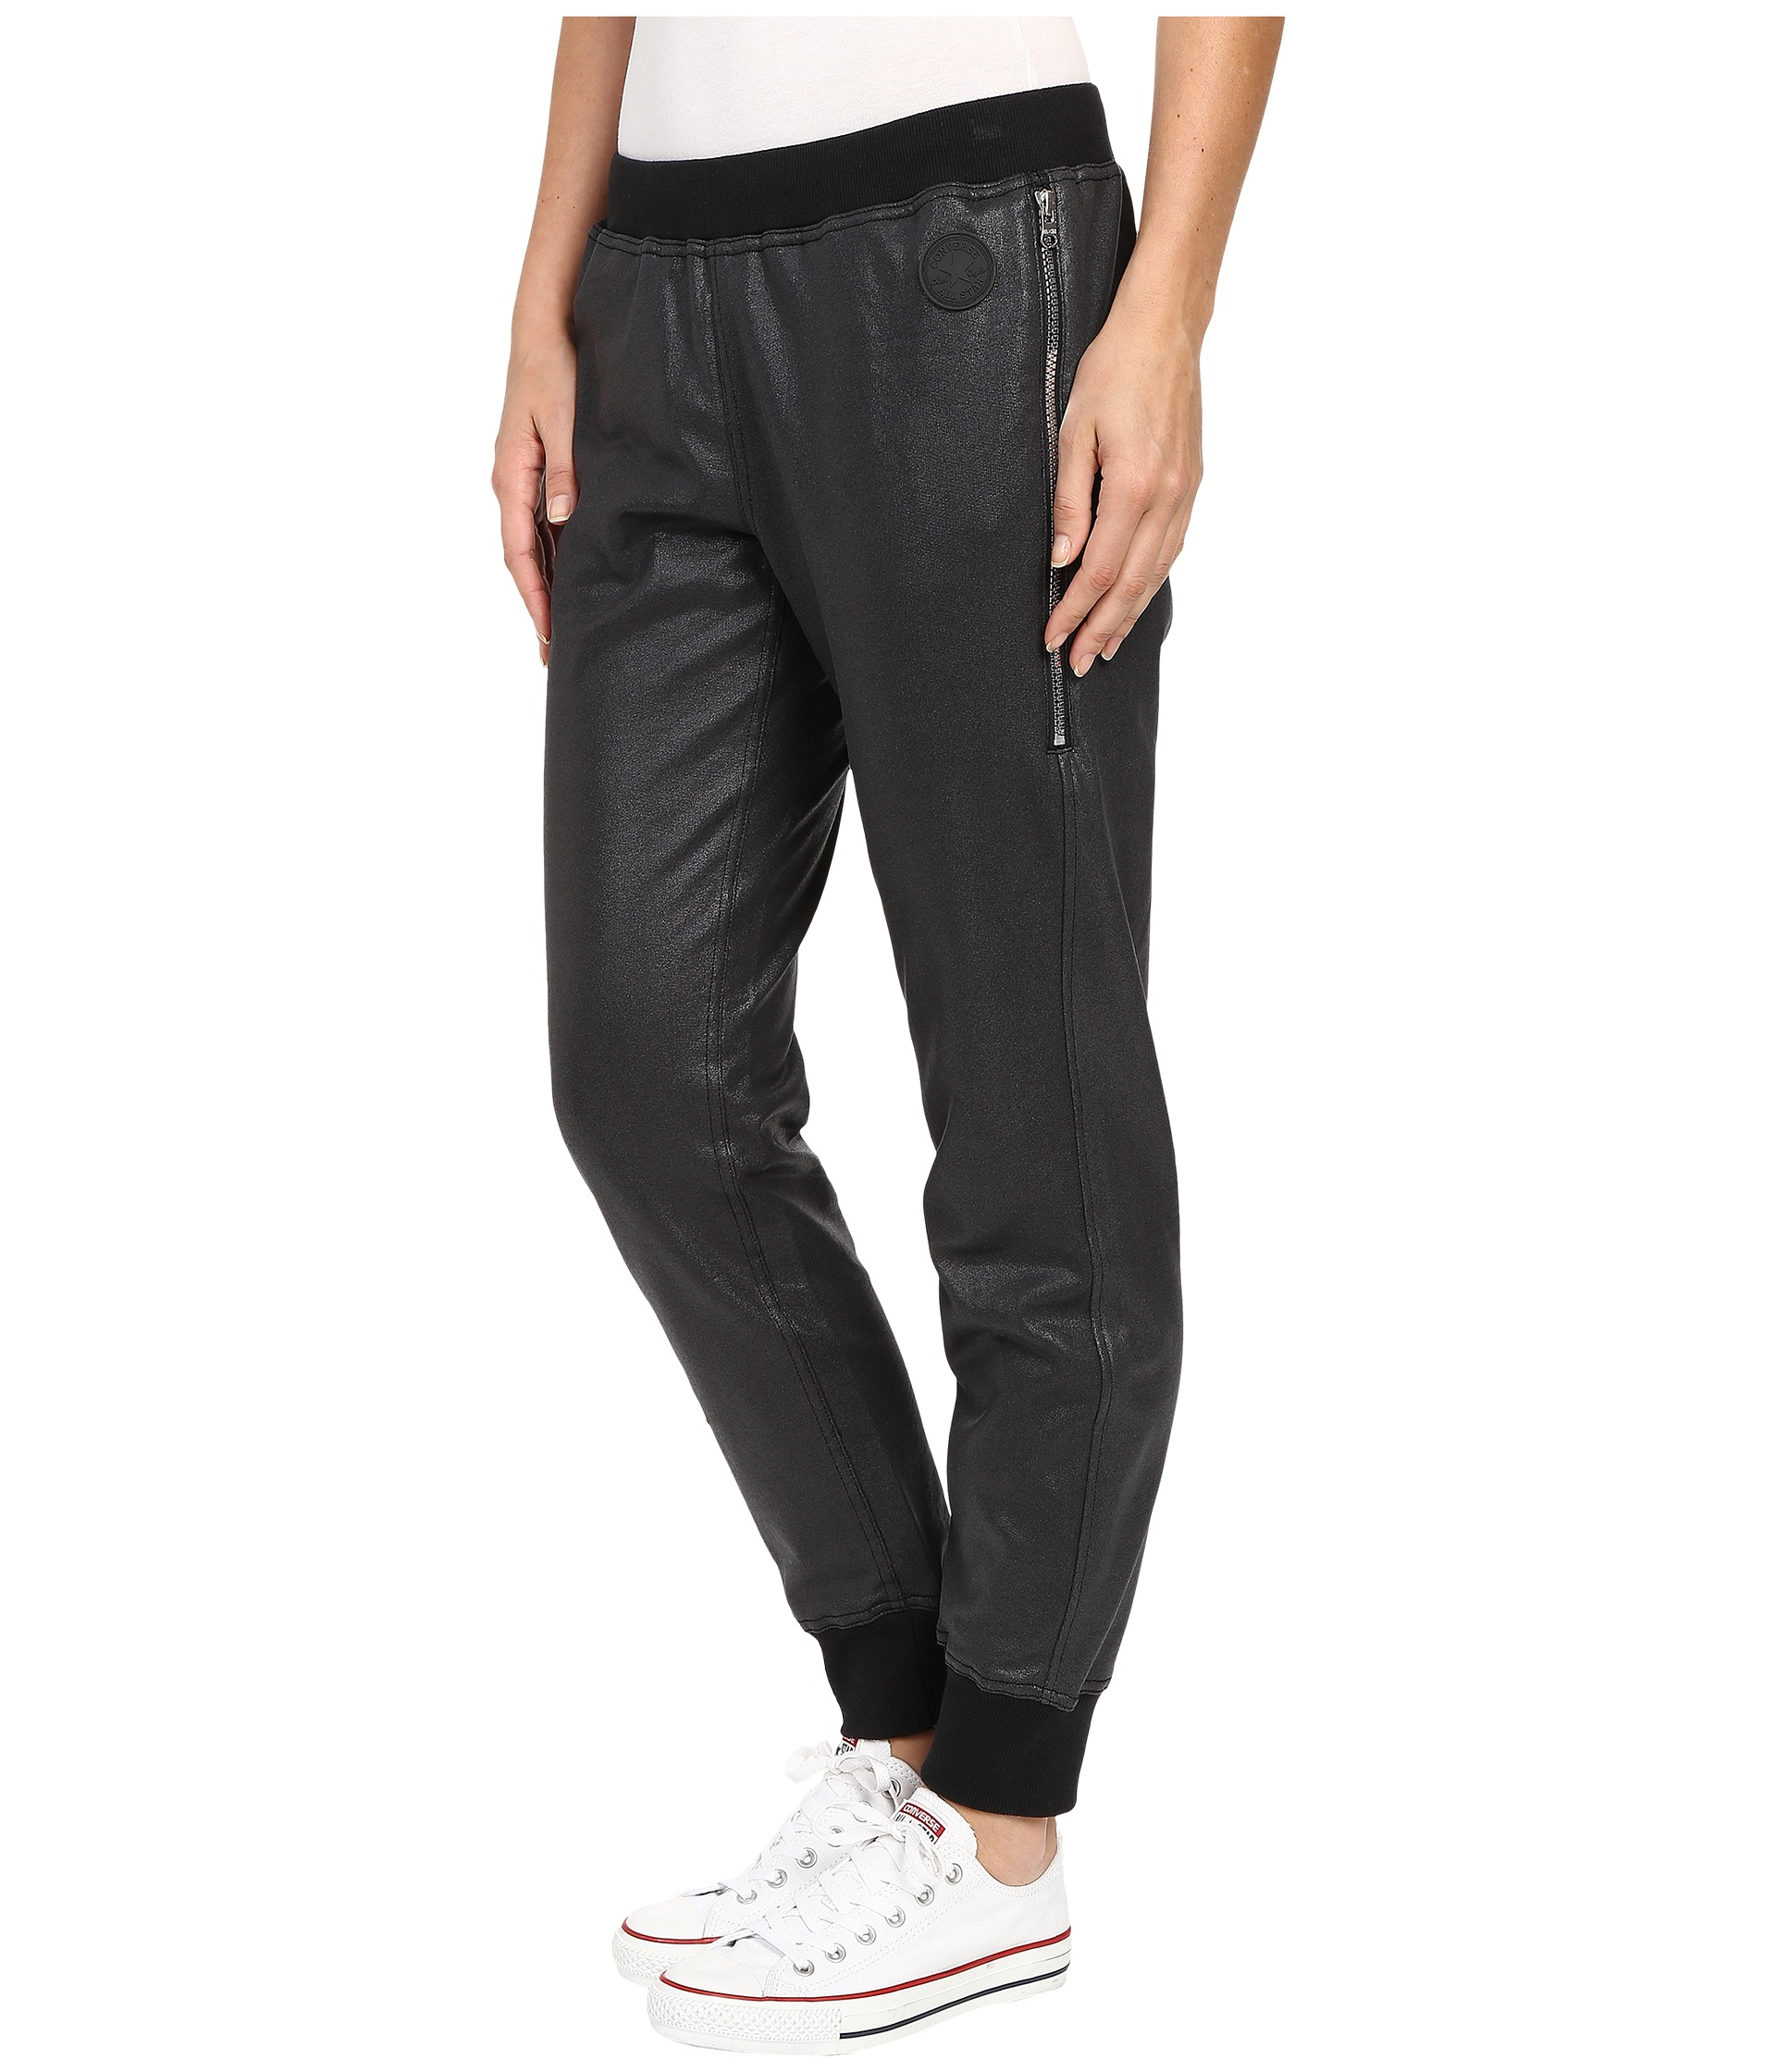 e535de07a9b361 Lyst - Converse Coated Zipper Jogger Pants in Black